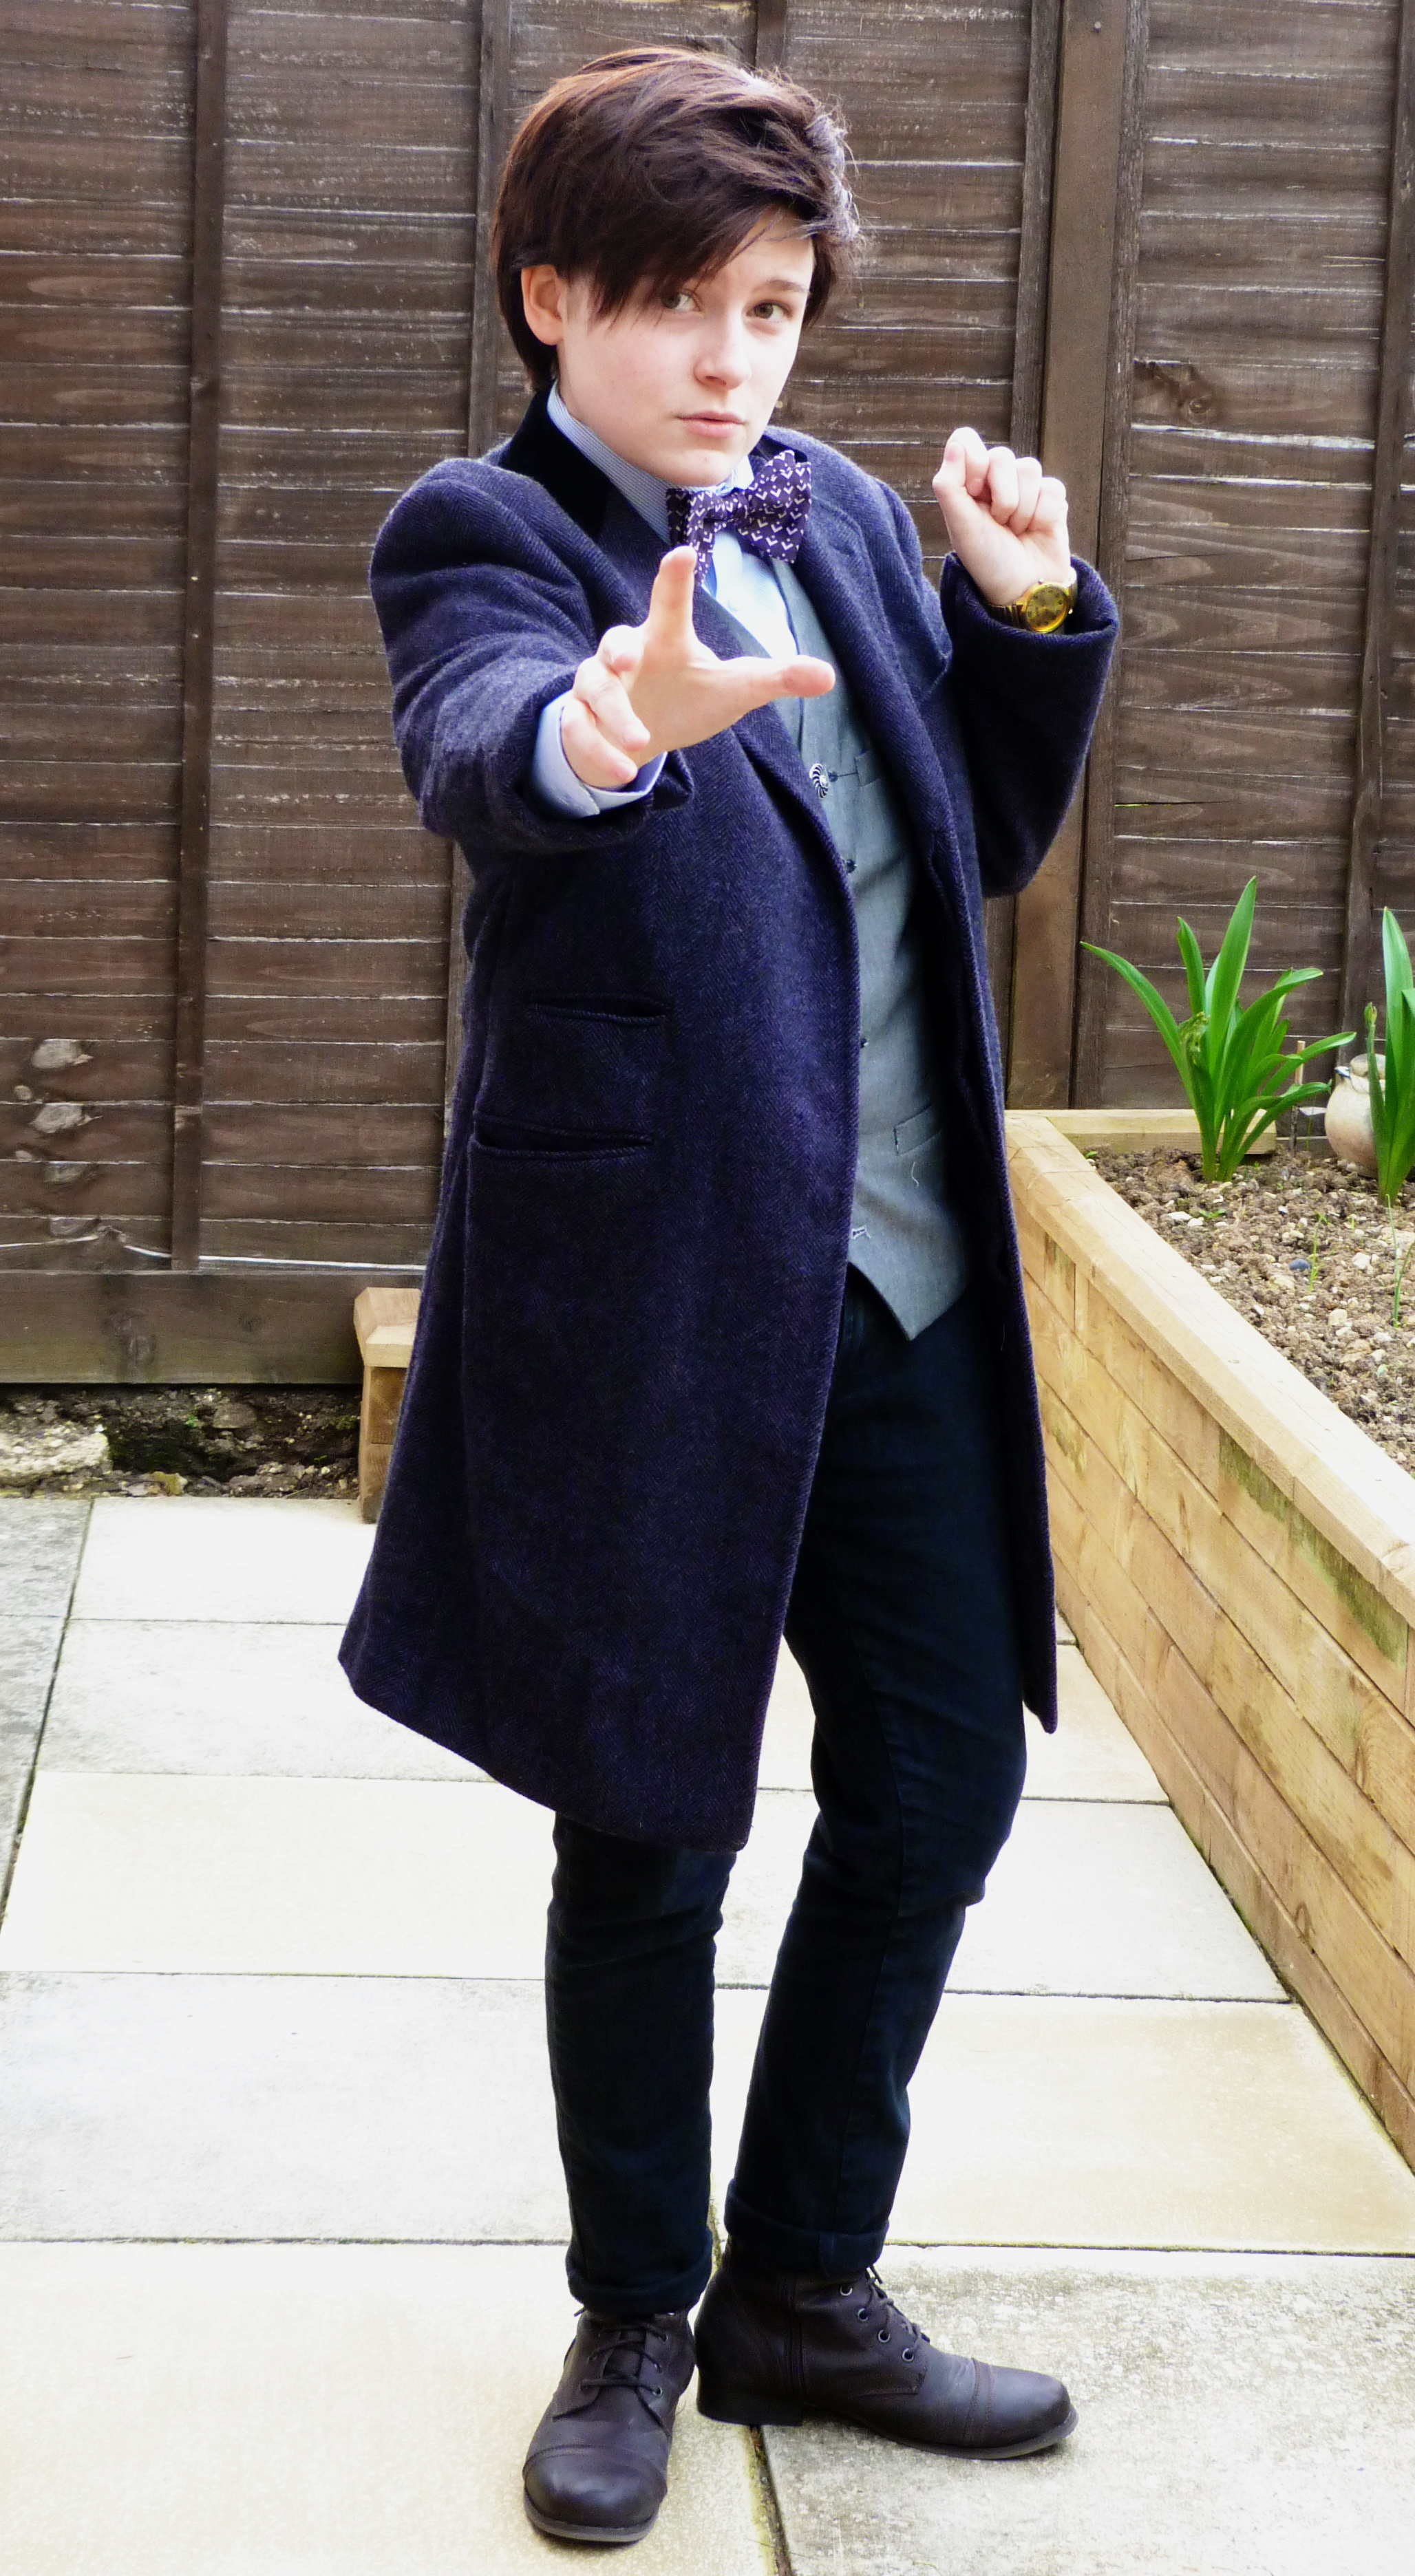 Clever Doctor Who Costume and Cosplay Fun for Halloween ...  Doctor Who Cosplay